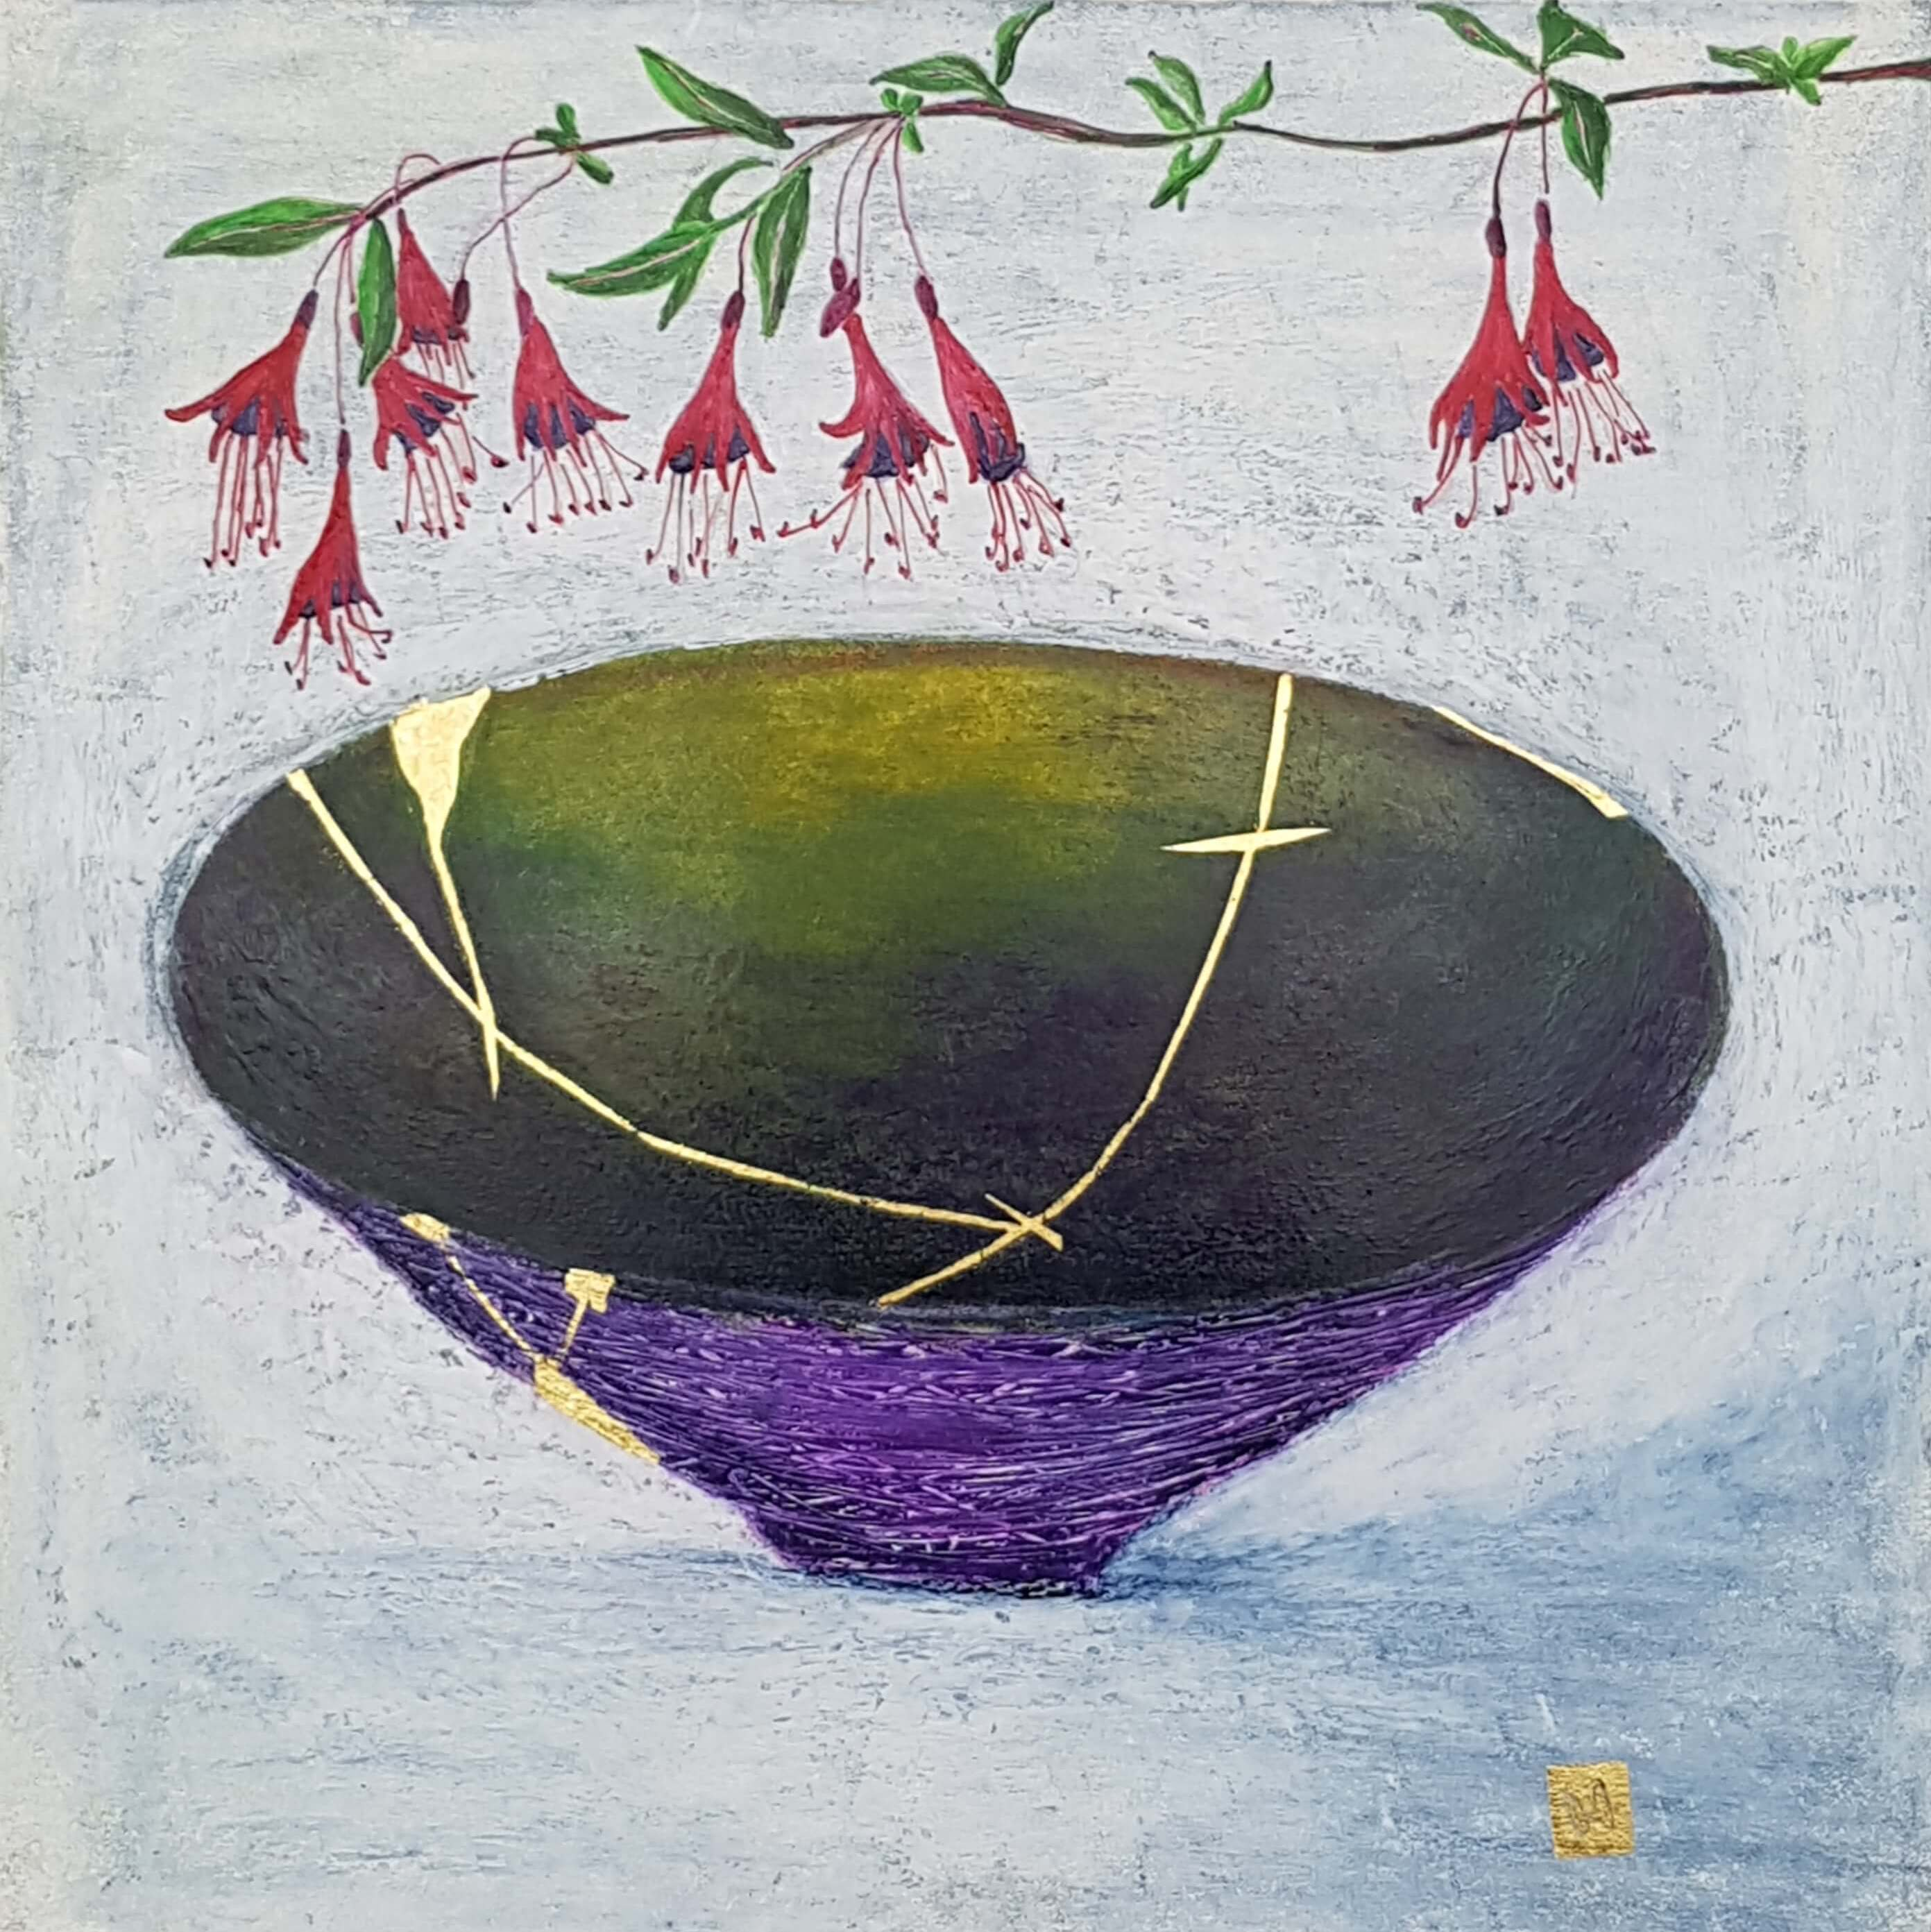 A kintsugi bowl painting with fuchsia flowers purple green gold